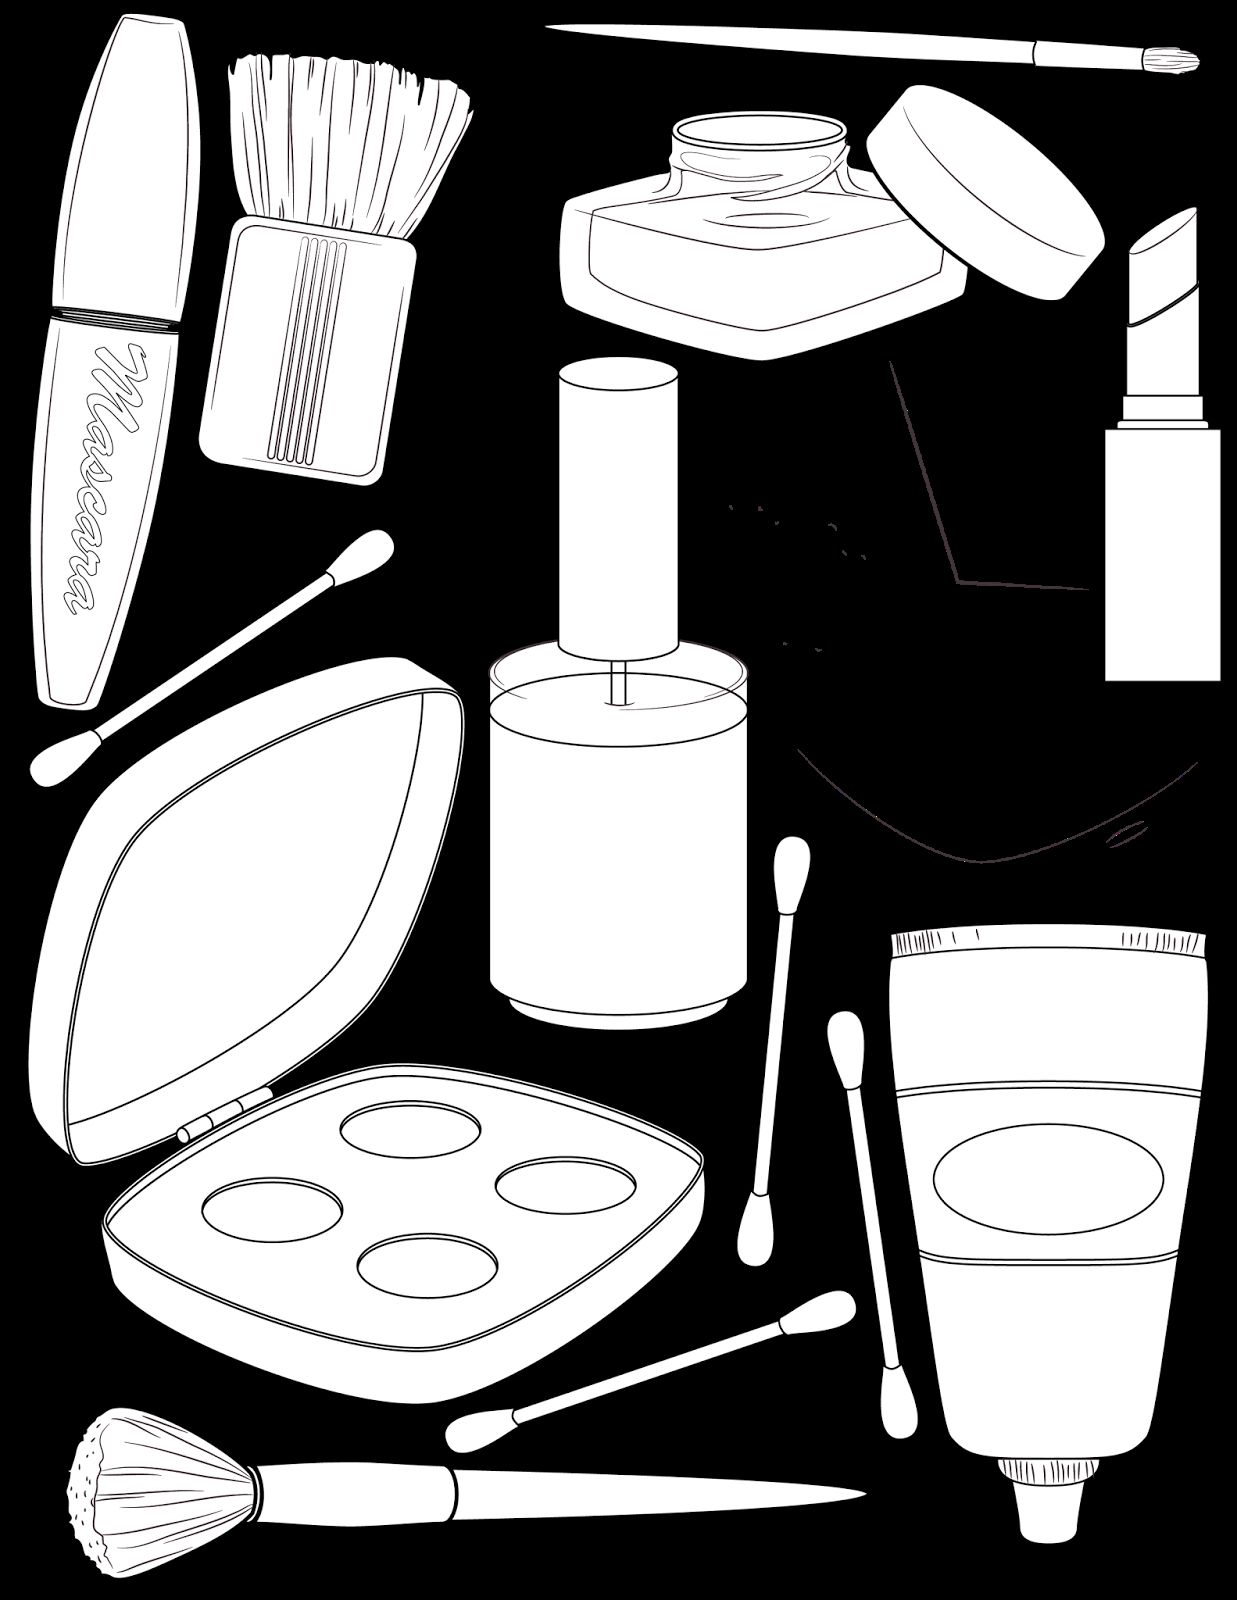 Makeup Coloring Pages Free Http Www Wallpaperartdesignhd Us Makeup Coloring Pages Free 47025 Coloring Pages Barbie Coloring Pages Coloring Pages To Print